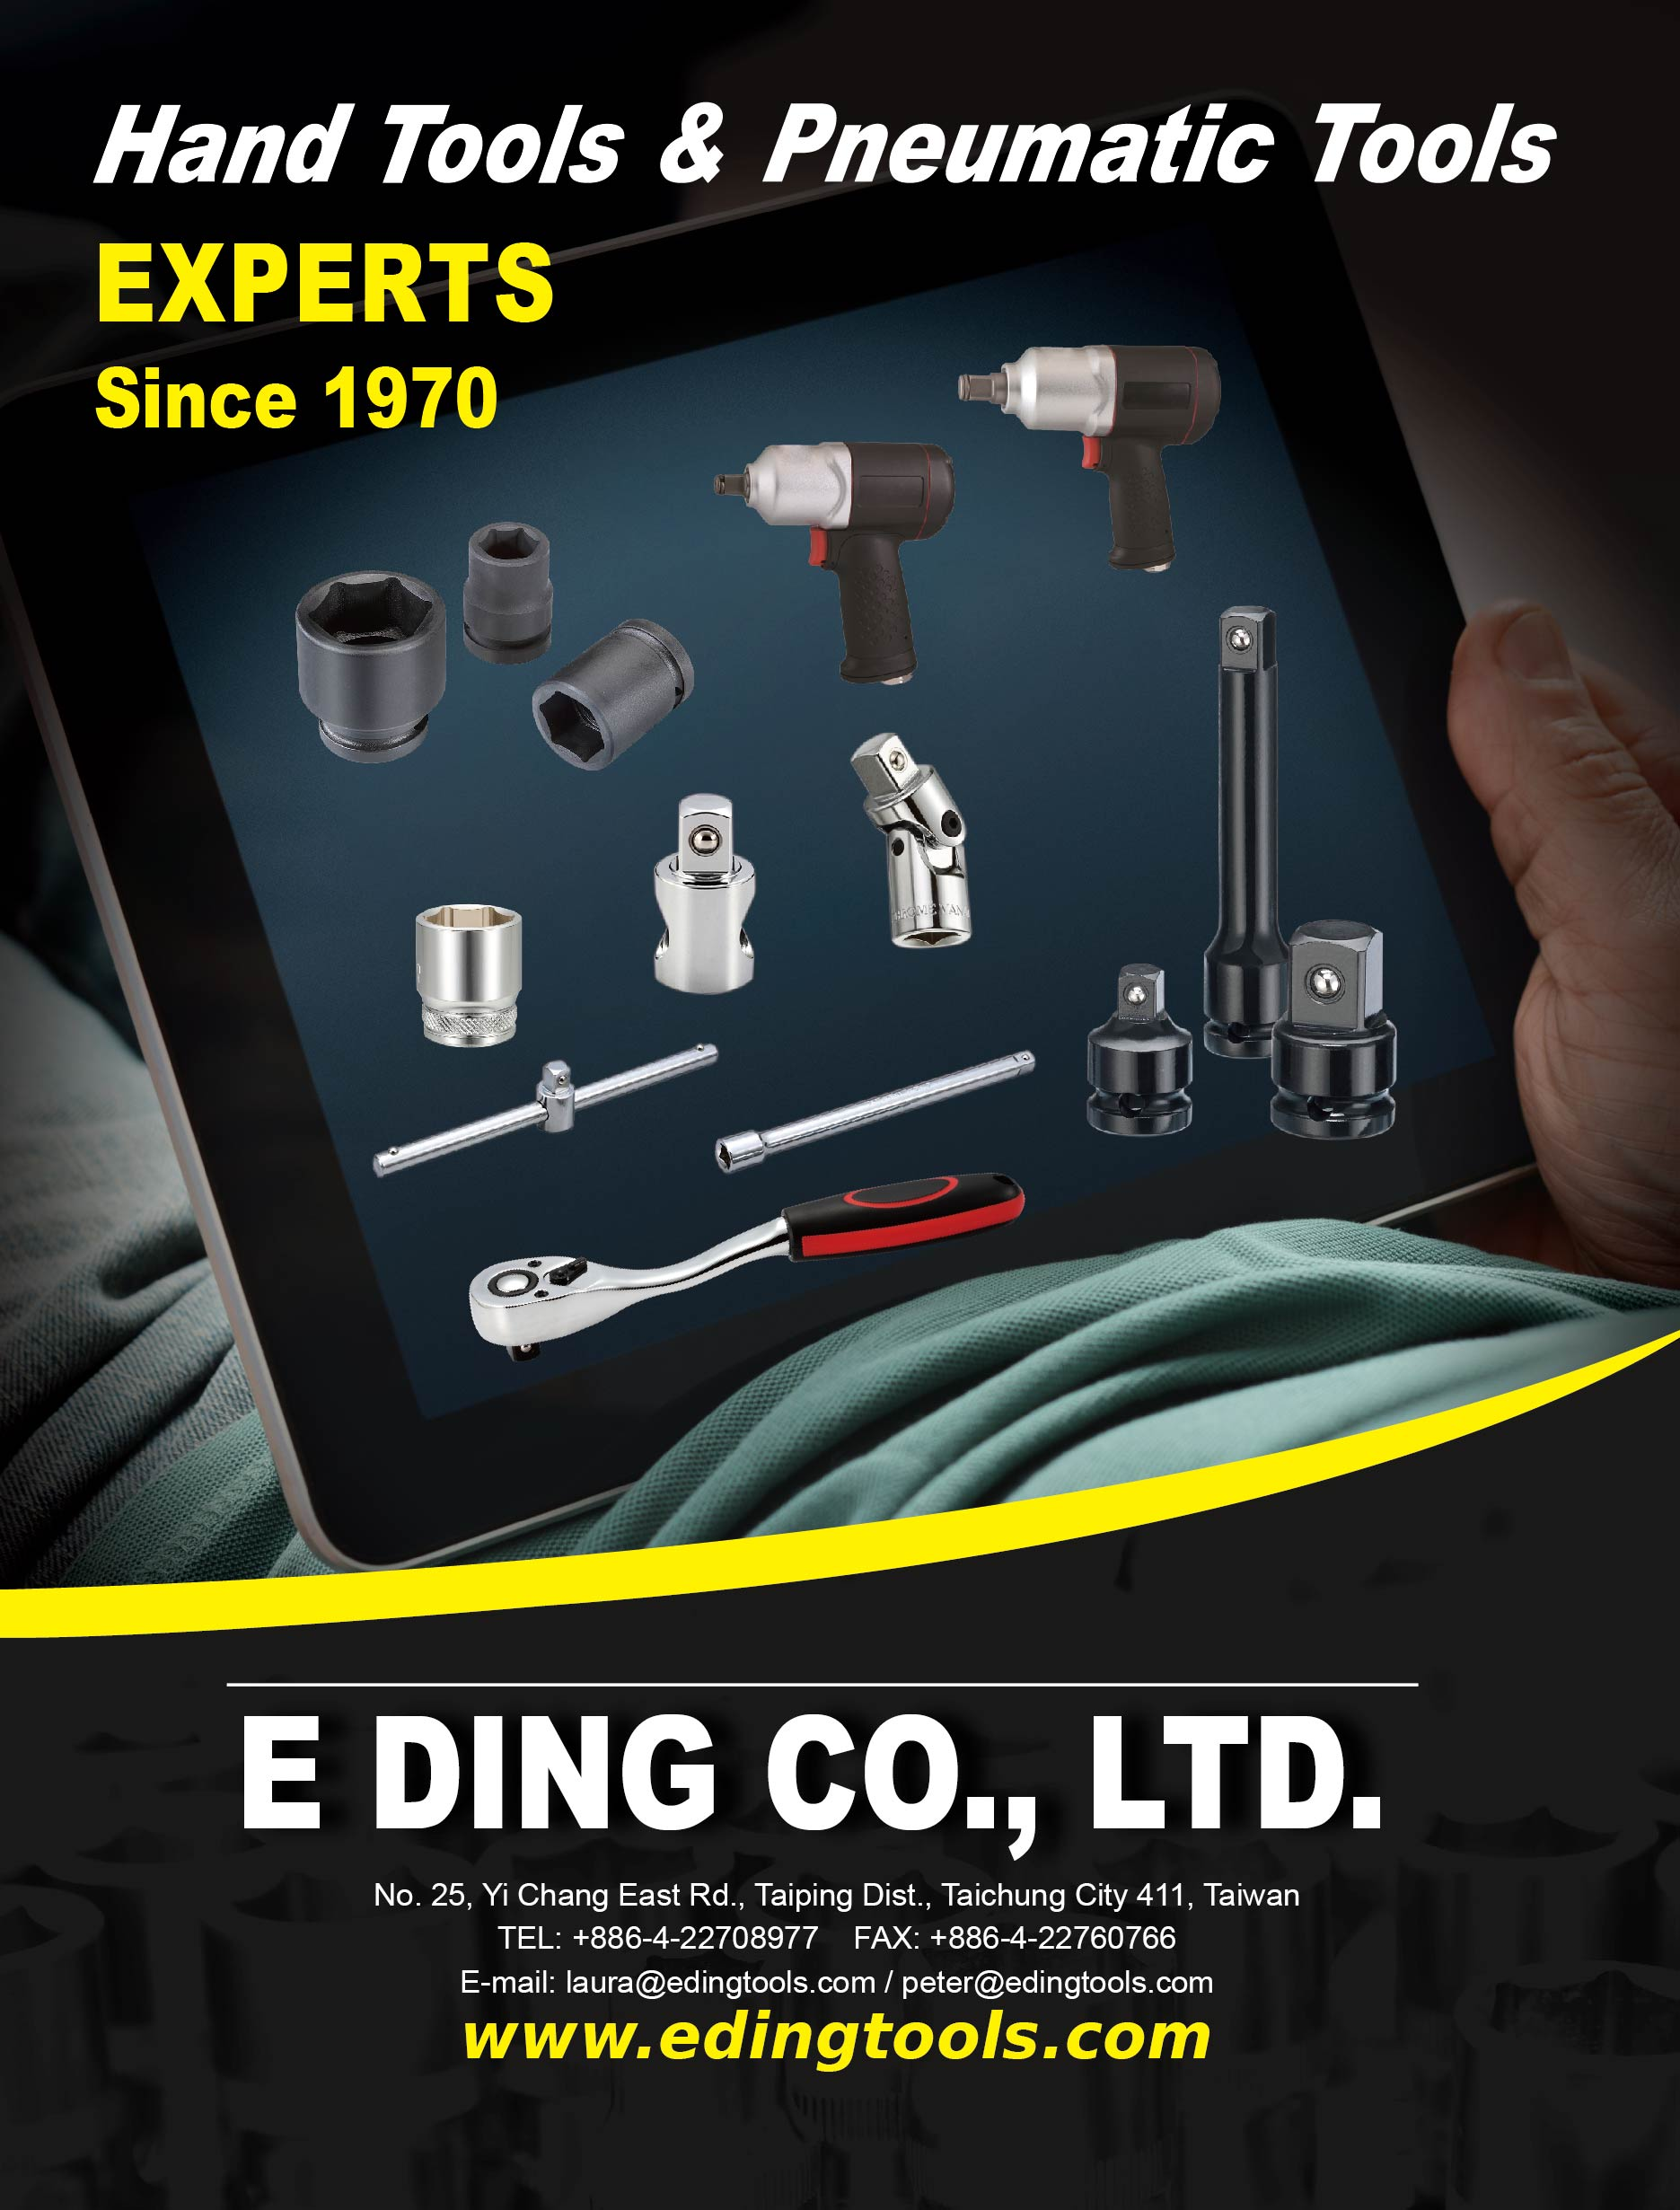 E DING CO., LTD.